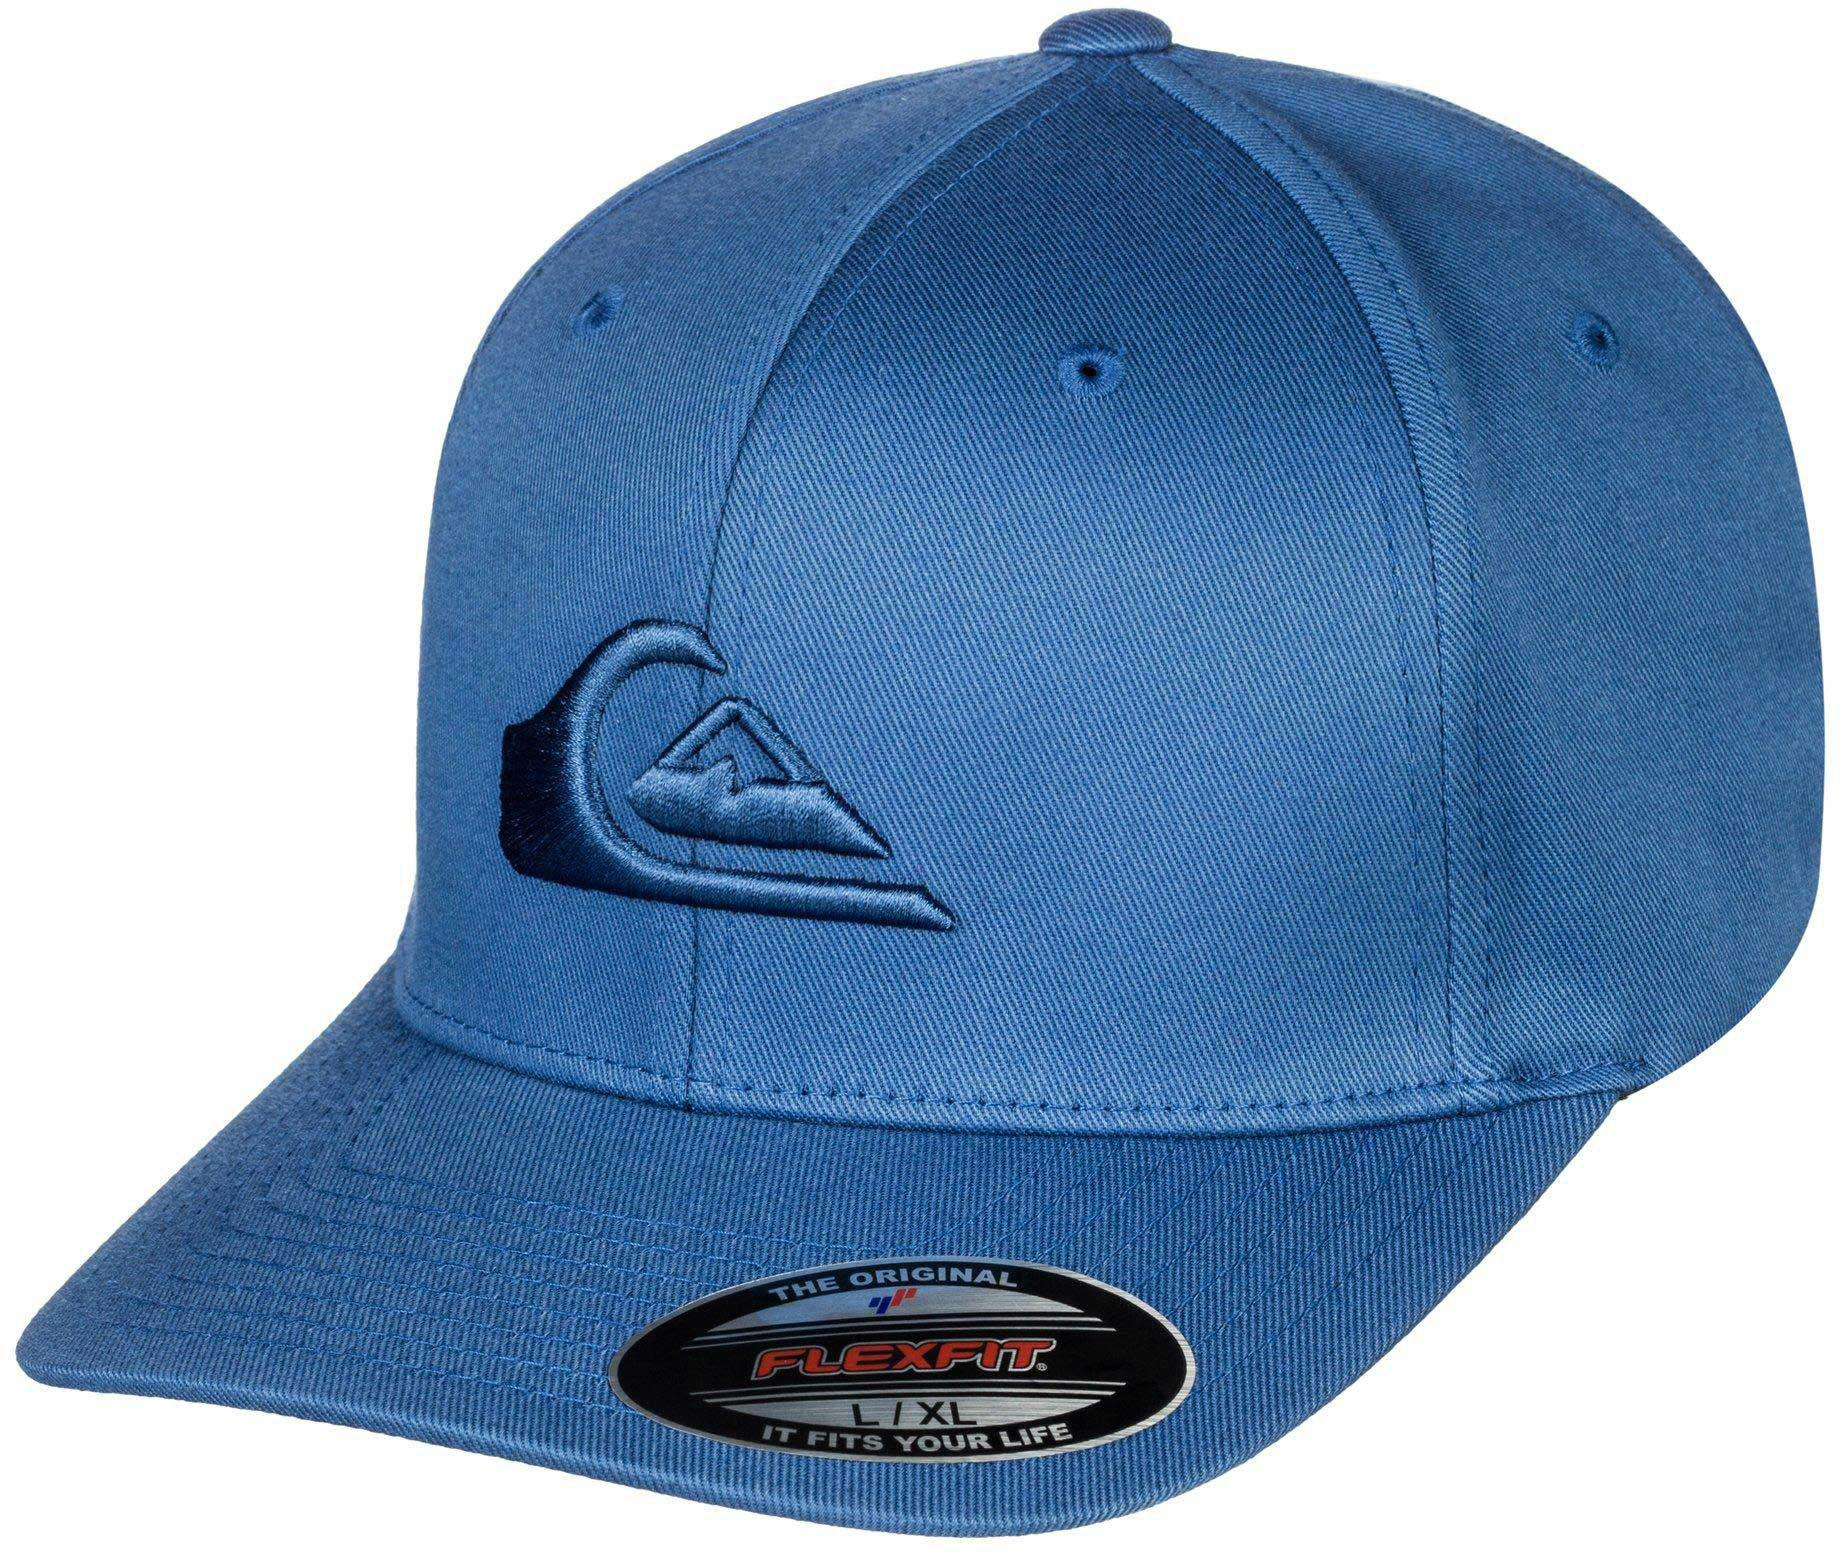 competitive price 5b113 fecb8 Quiksilver Mountain And Wave Flexfit Hat in Blue for Men - Lyst